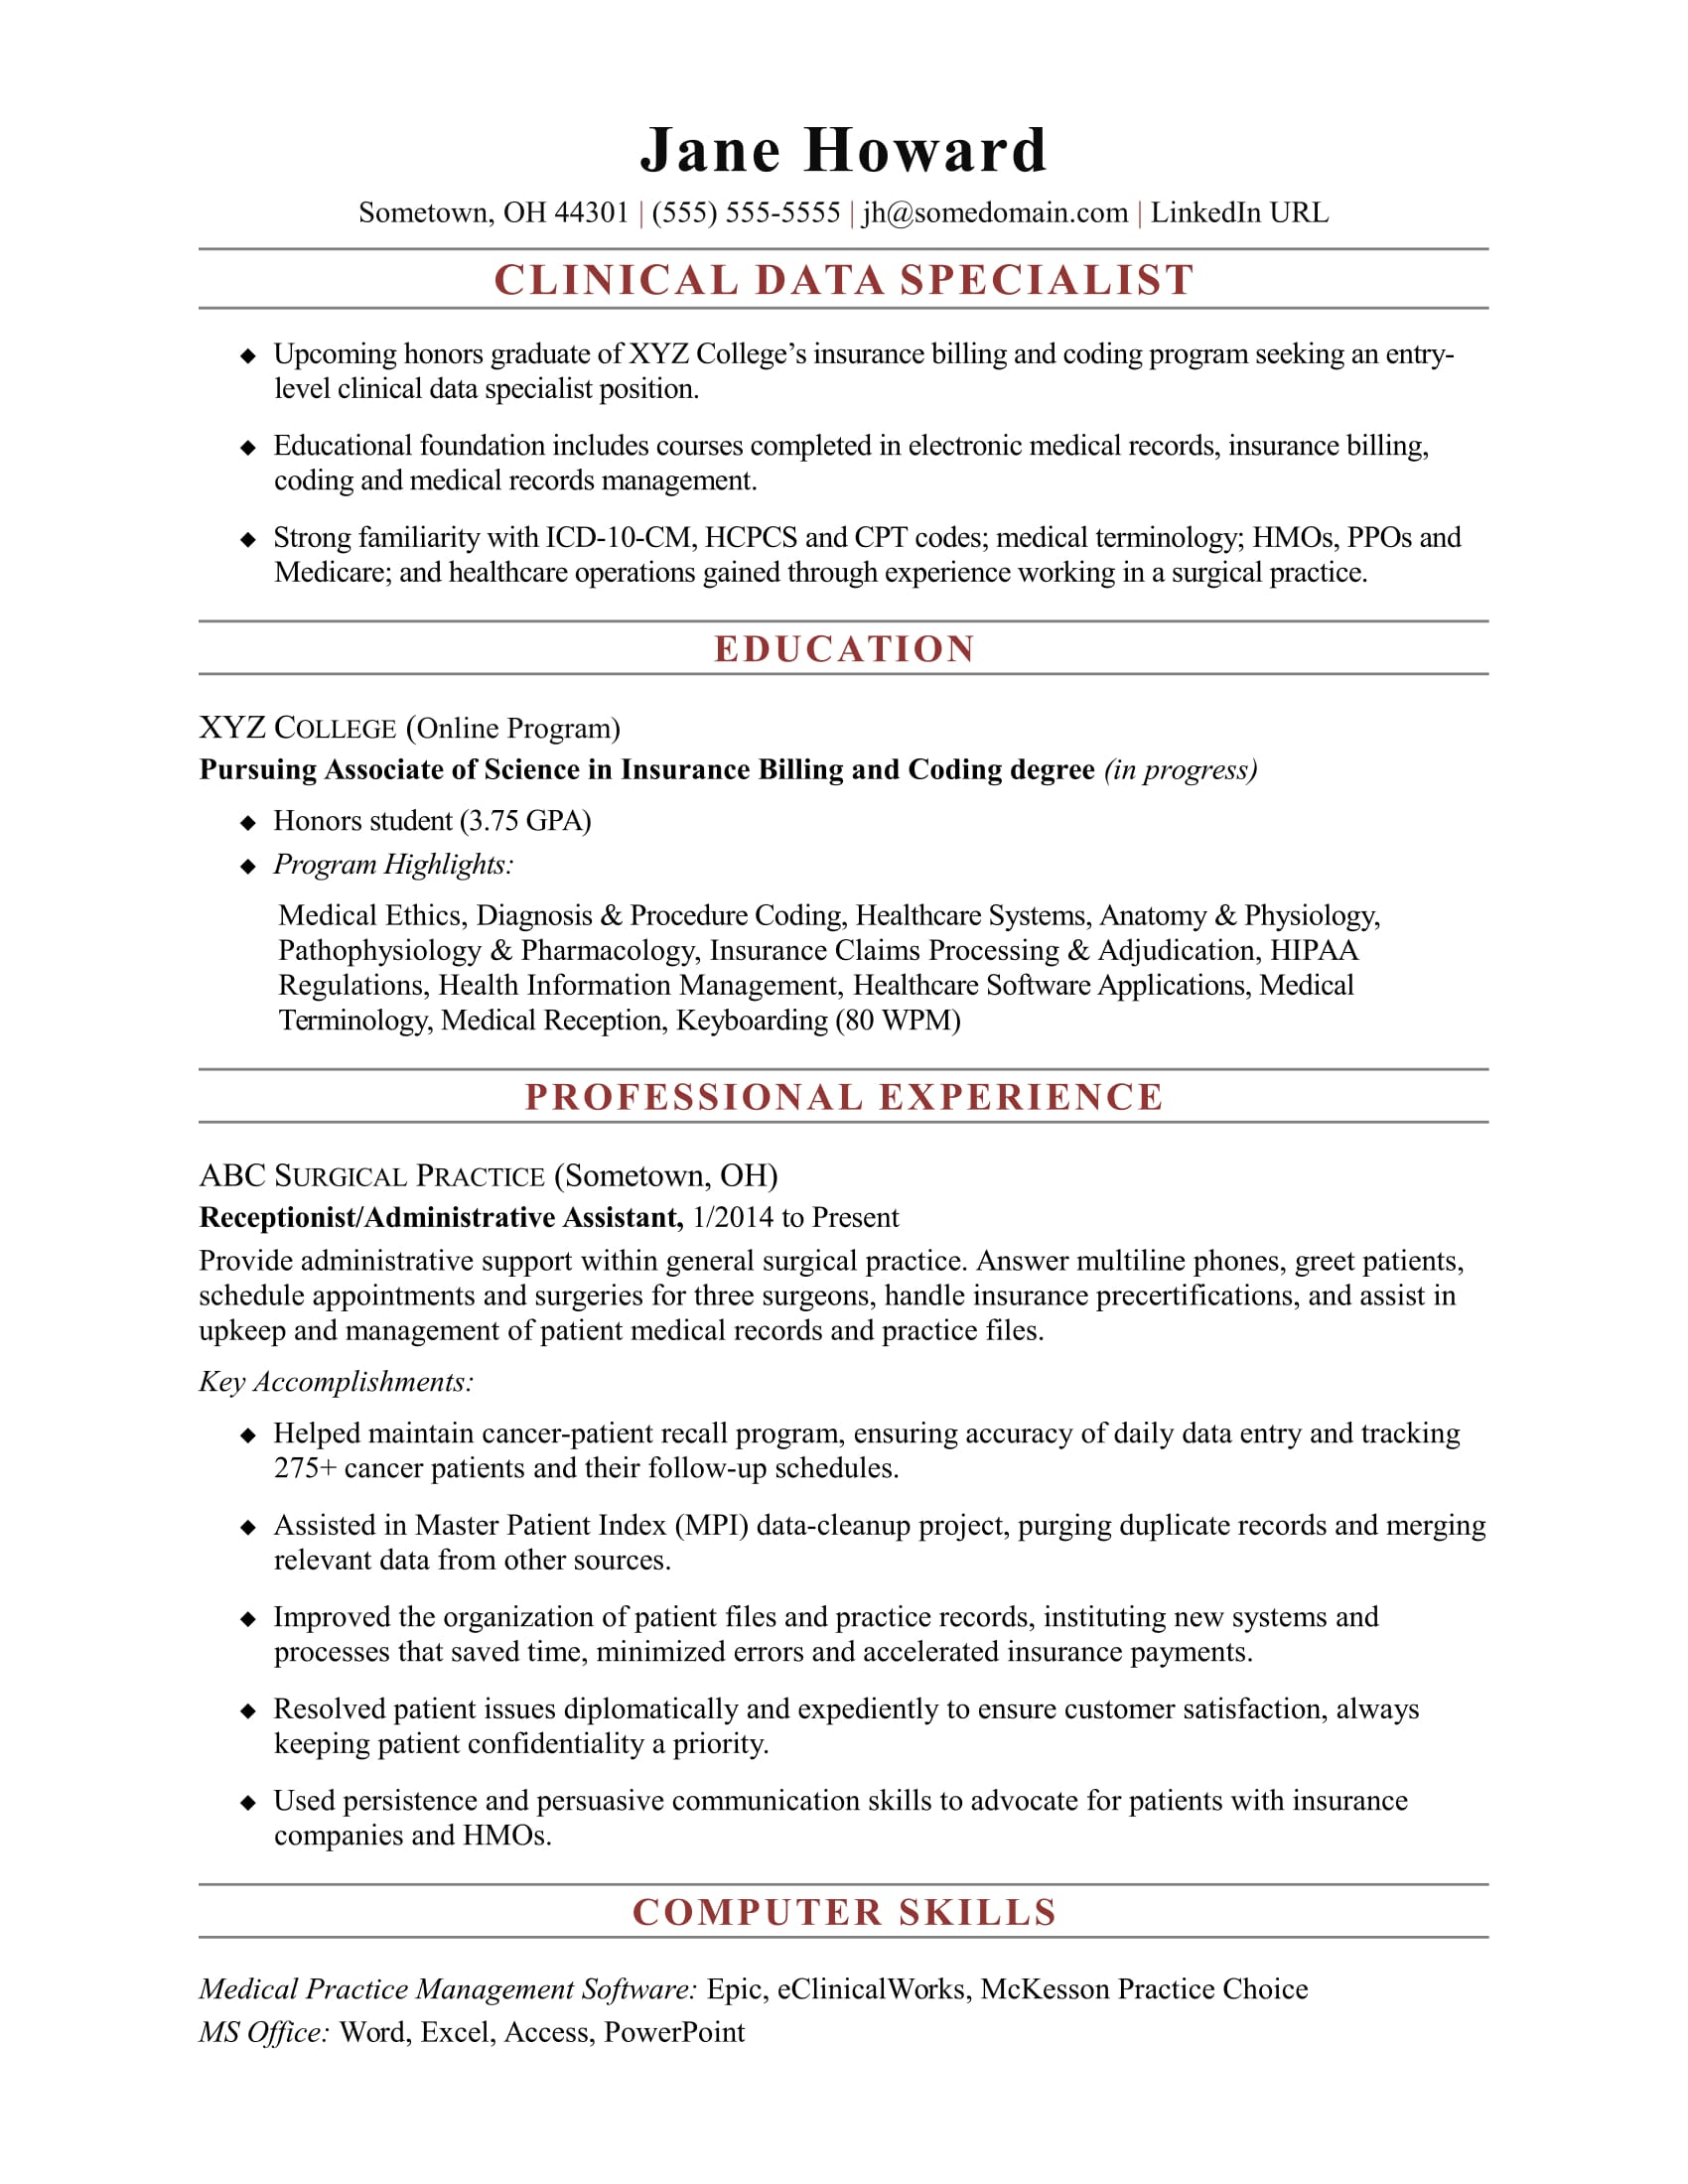 sample resume for an entry level clinical data specialist - Insurance Resume Examples